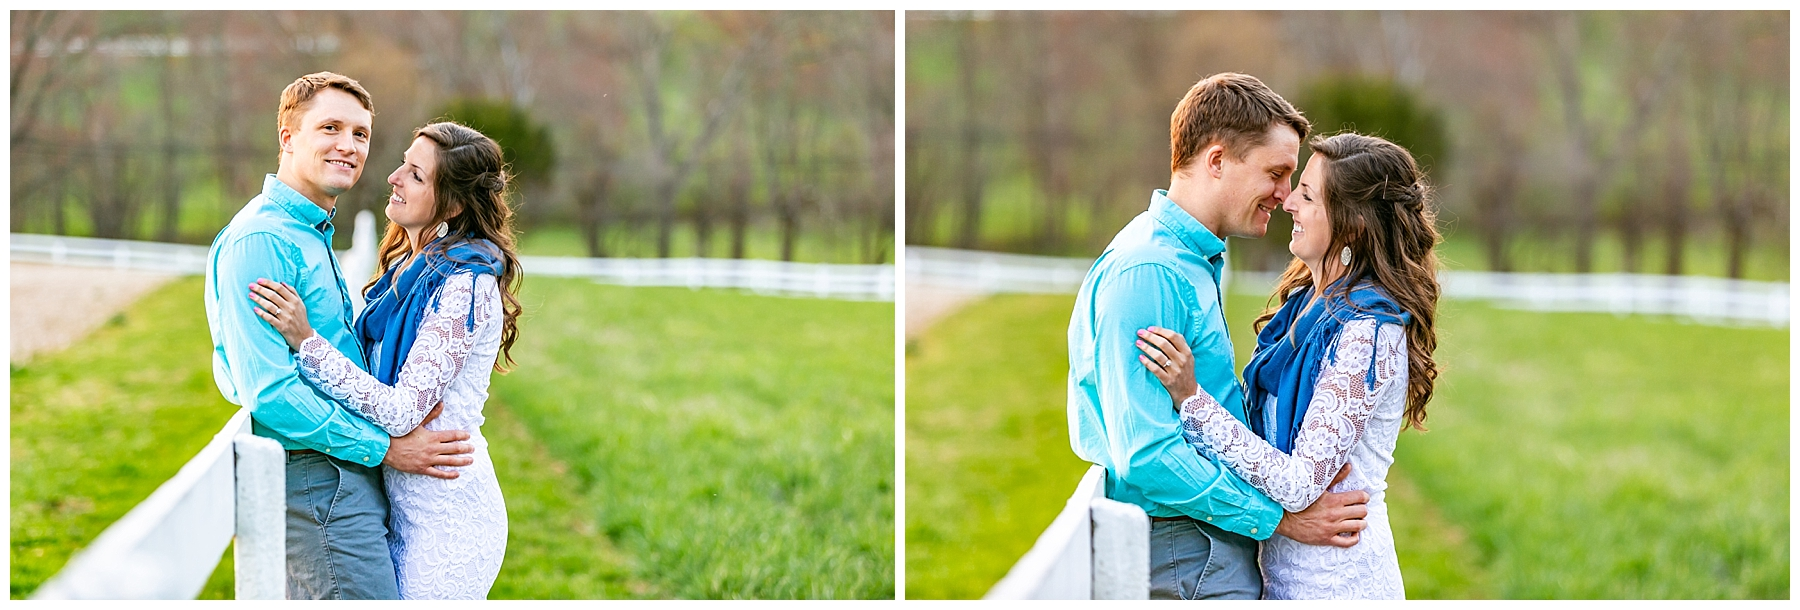 Chelsea Phil Private Estate Engagement Living Radiant Photography photos color_0049.jpg